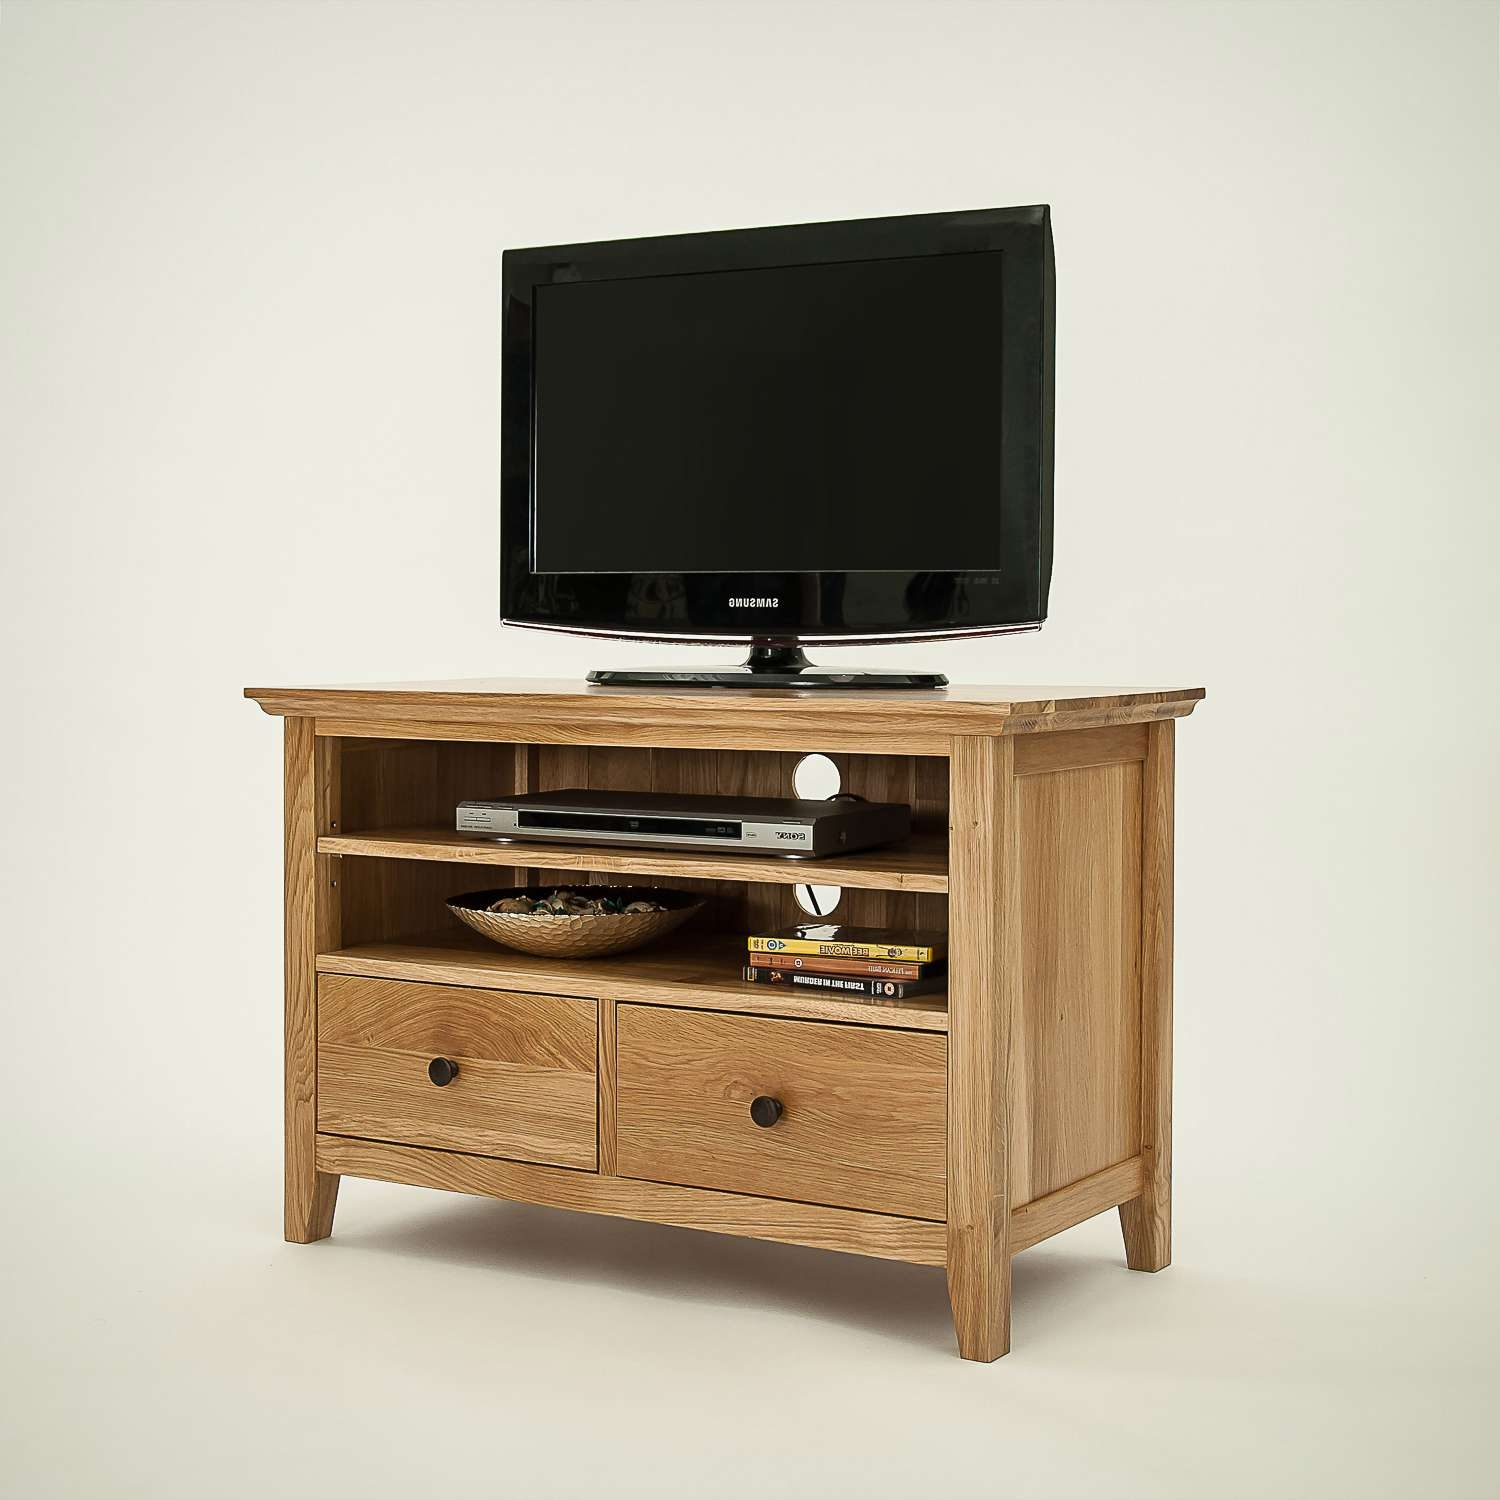 Artisan Rustic Oak Small Tv Cabinet | Hampshire Furniture Throughout Oak Tv Cabinets (View 1 of 20)